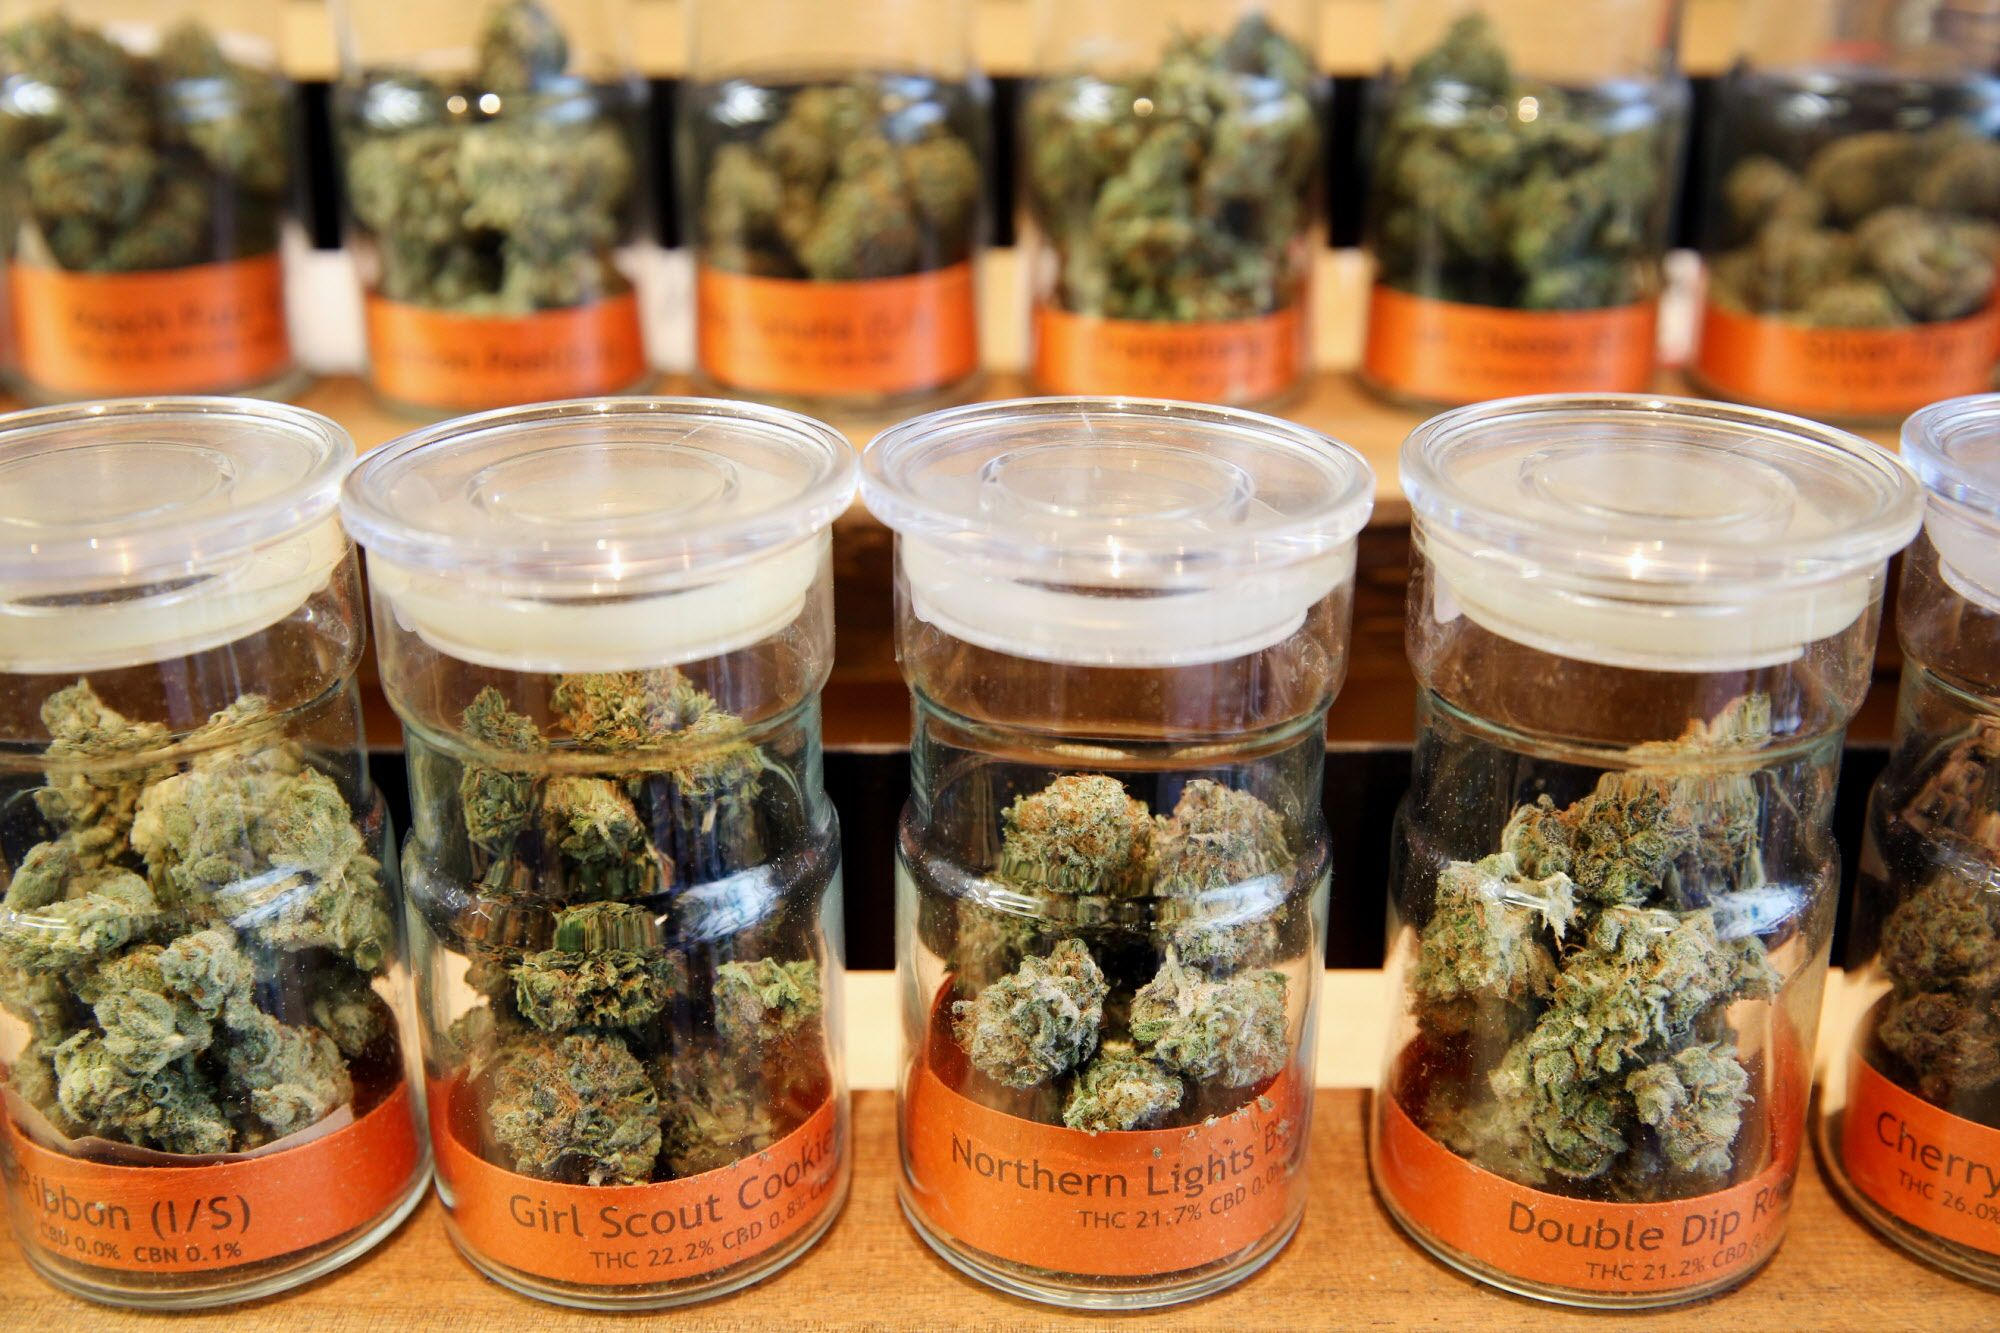 Cannabis buds at the Bloom Room Cannabis Collective on Wednesday, Feb. 22, 2017, in San Francisco, Calif.